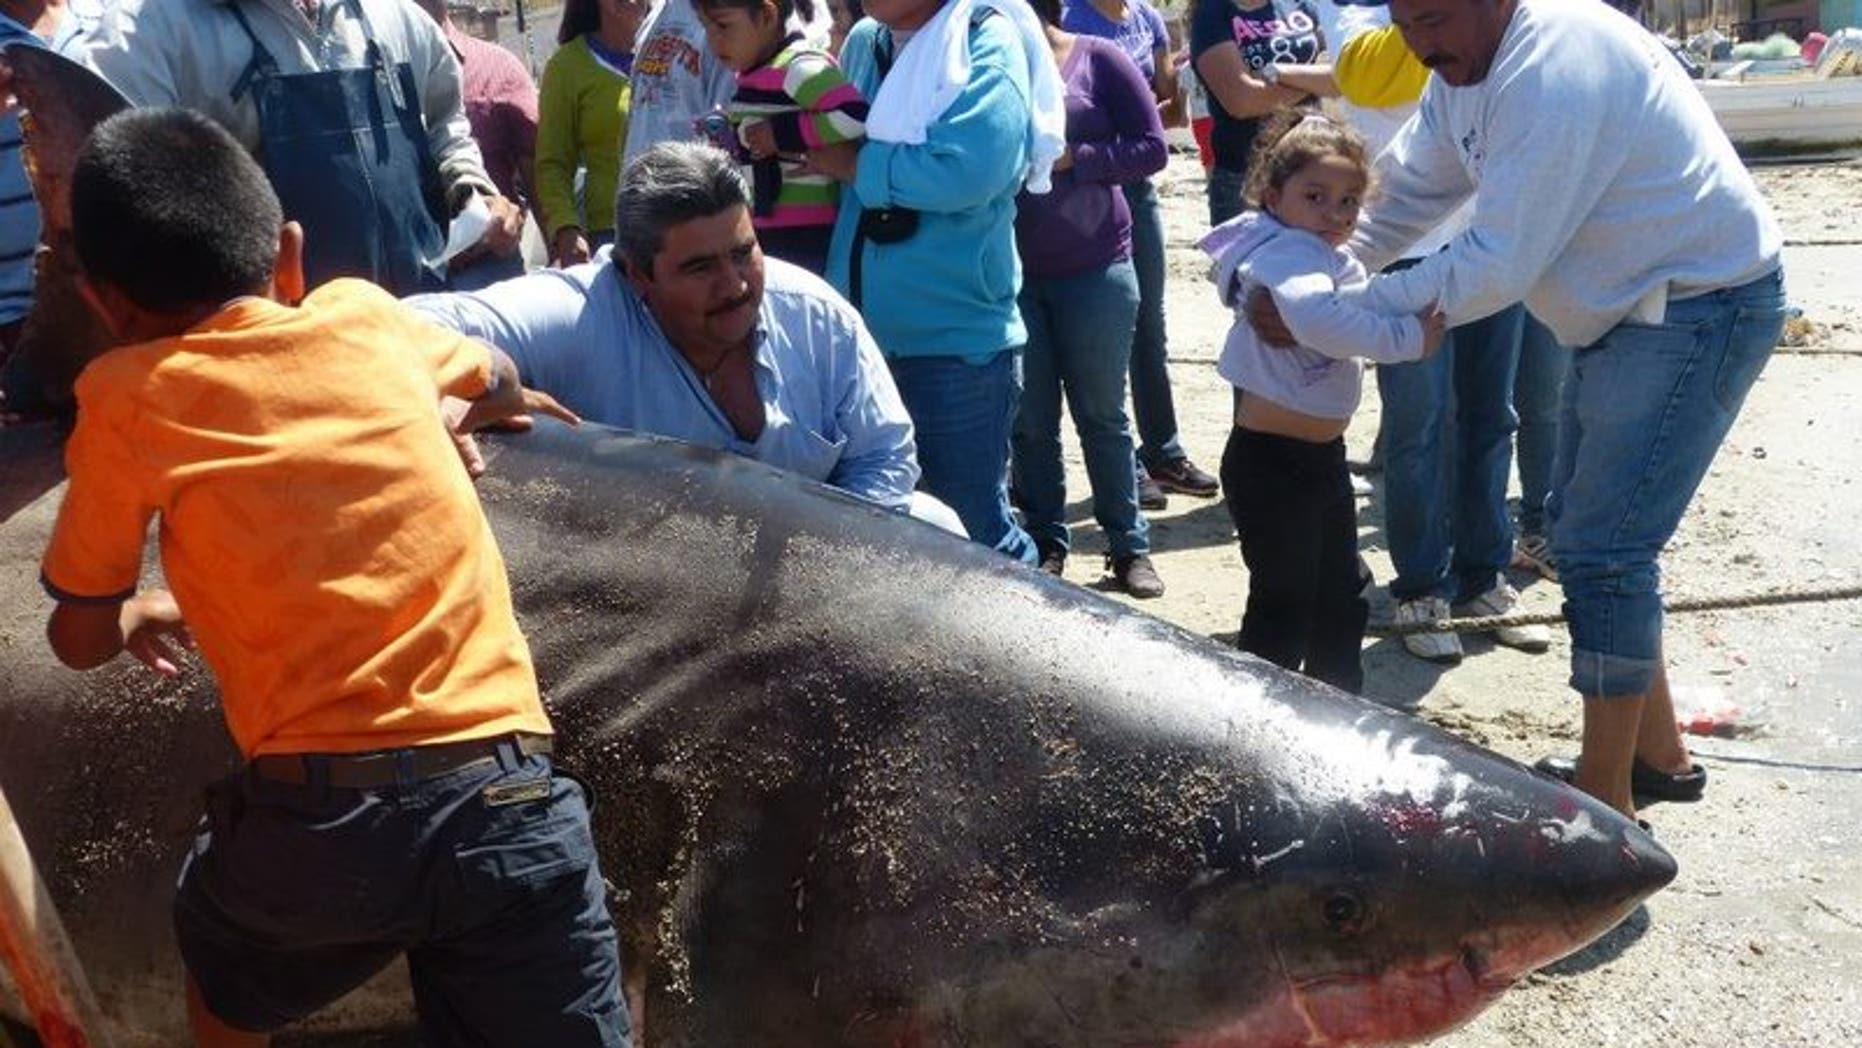 The massive catch, according to local reports, would be one of the longest great white sharks ever recorded if verified at a length of six meters, or 19.8 feet. (San Carlos Fishing Forum)